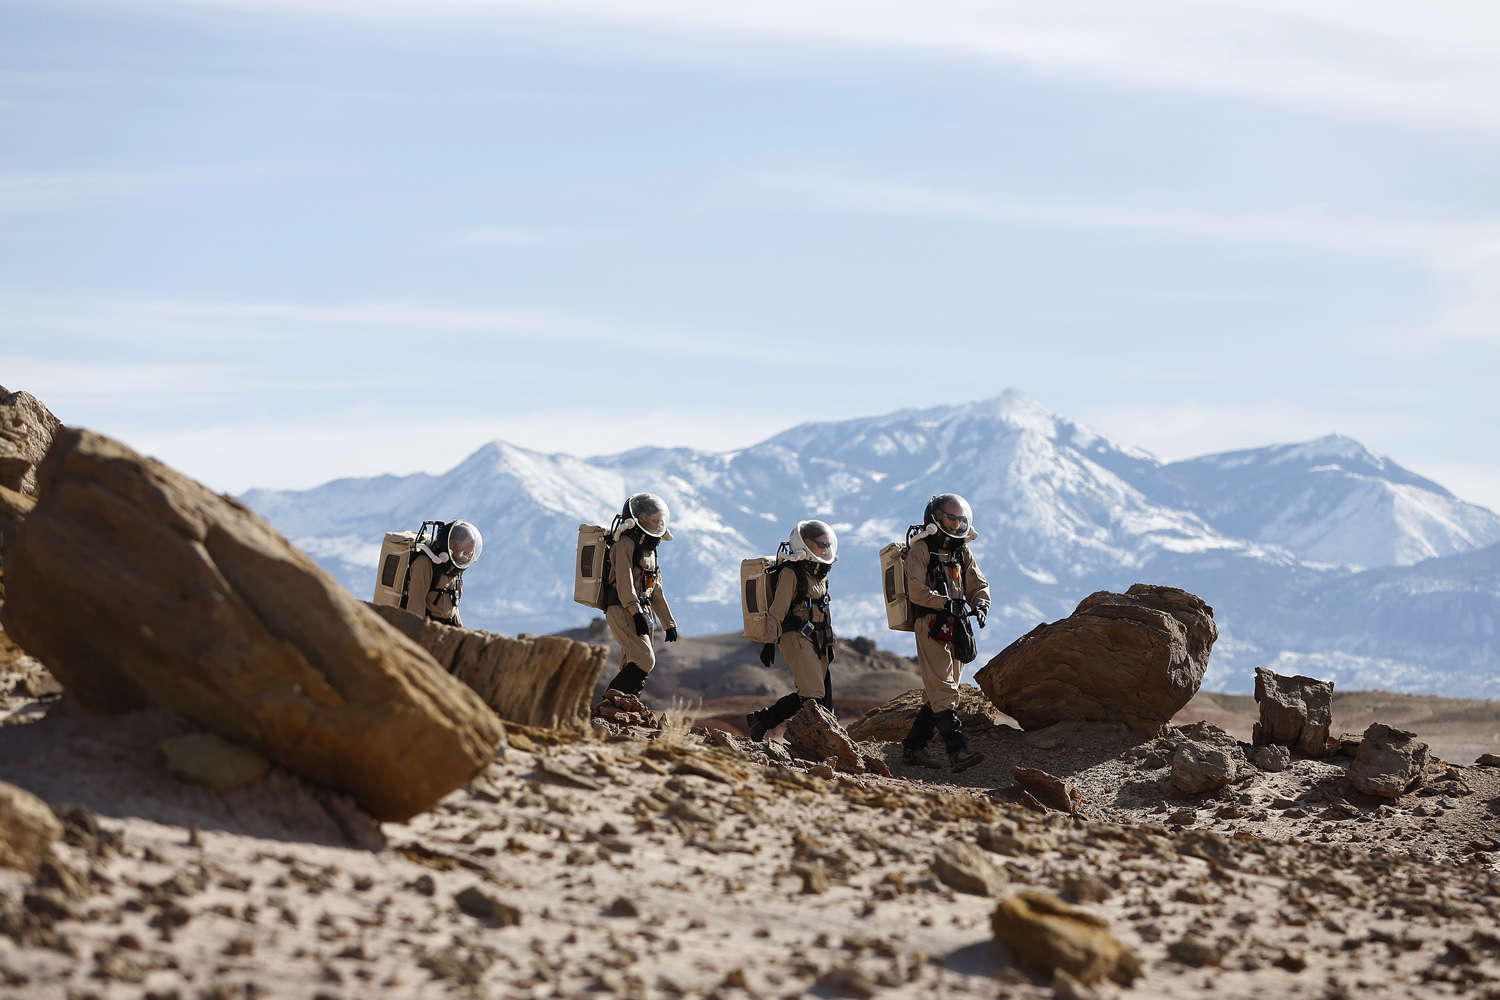 March 2, 2013. Members of Crew 125 EuroMoonMars B mission venture out in their simulated spacesuits to collect geologic samples to be studied at the Mars Desert Research Station (MDRS) outside Hanksville in the Utah desert.